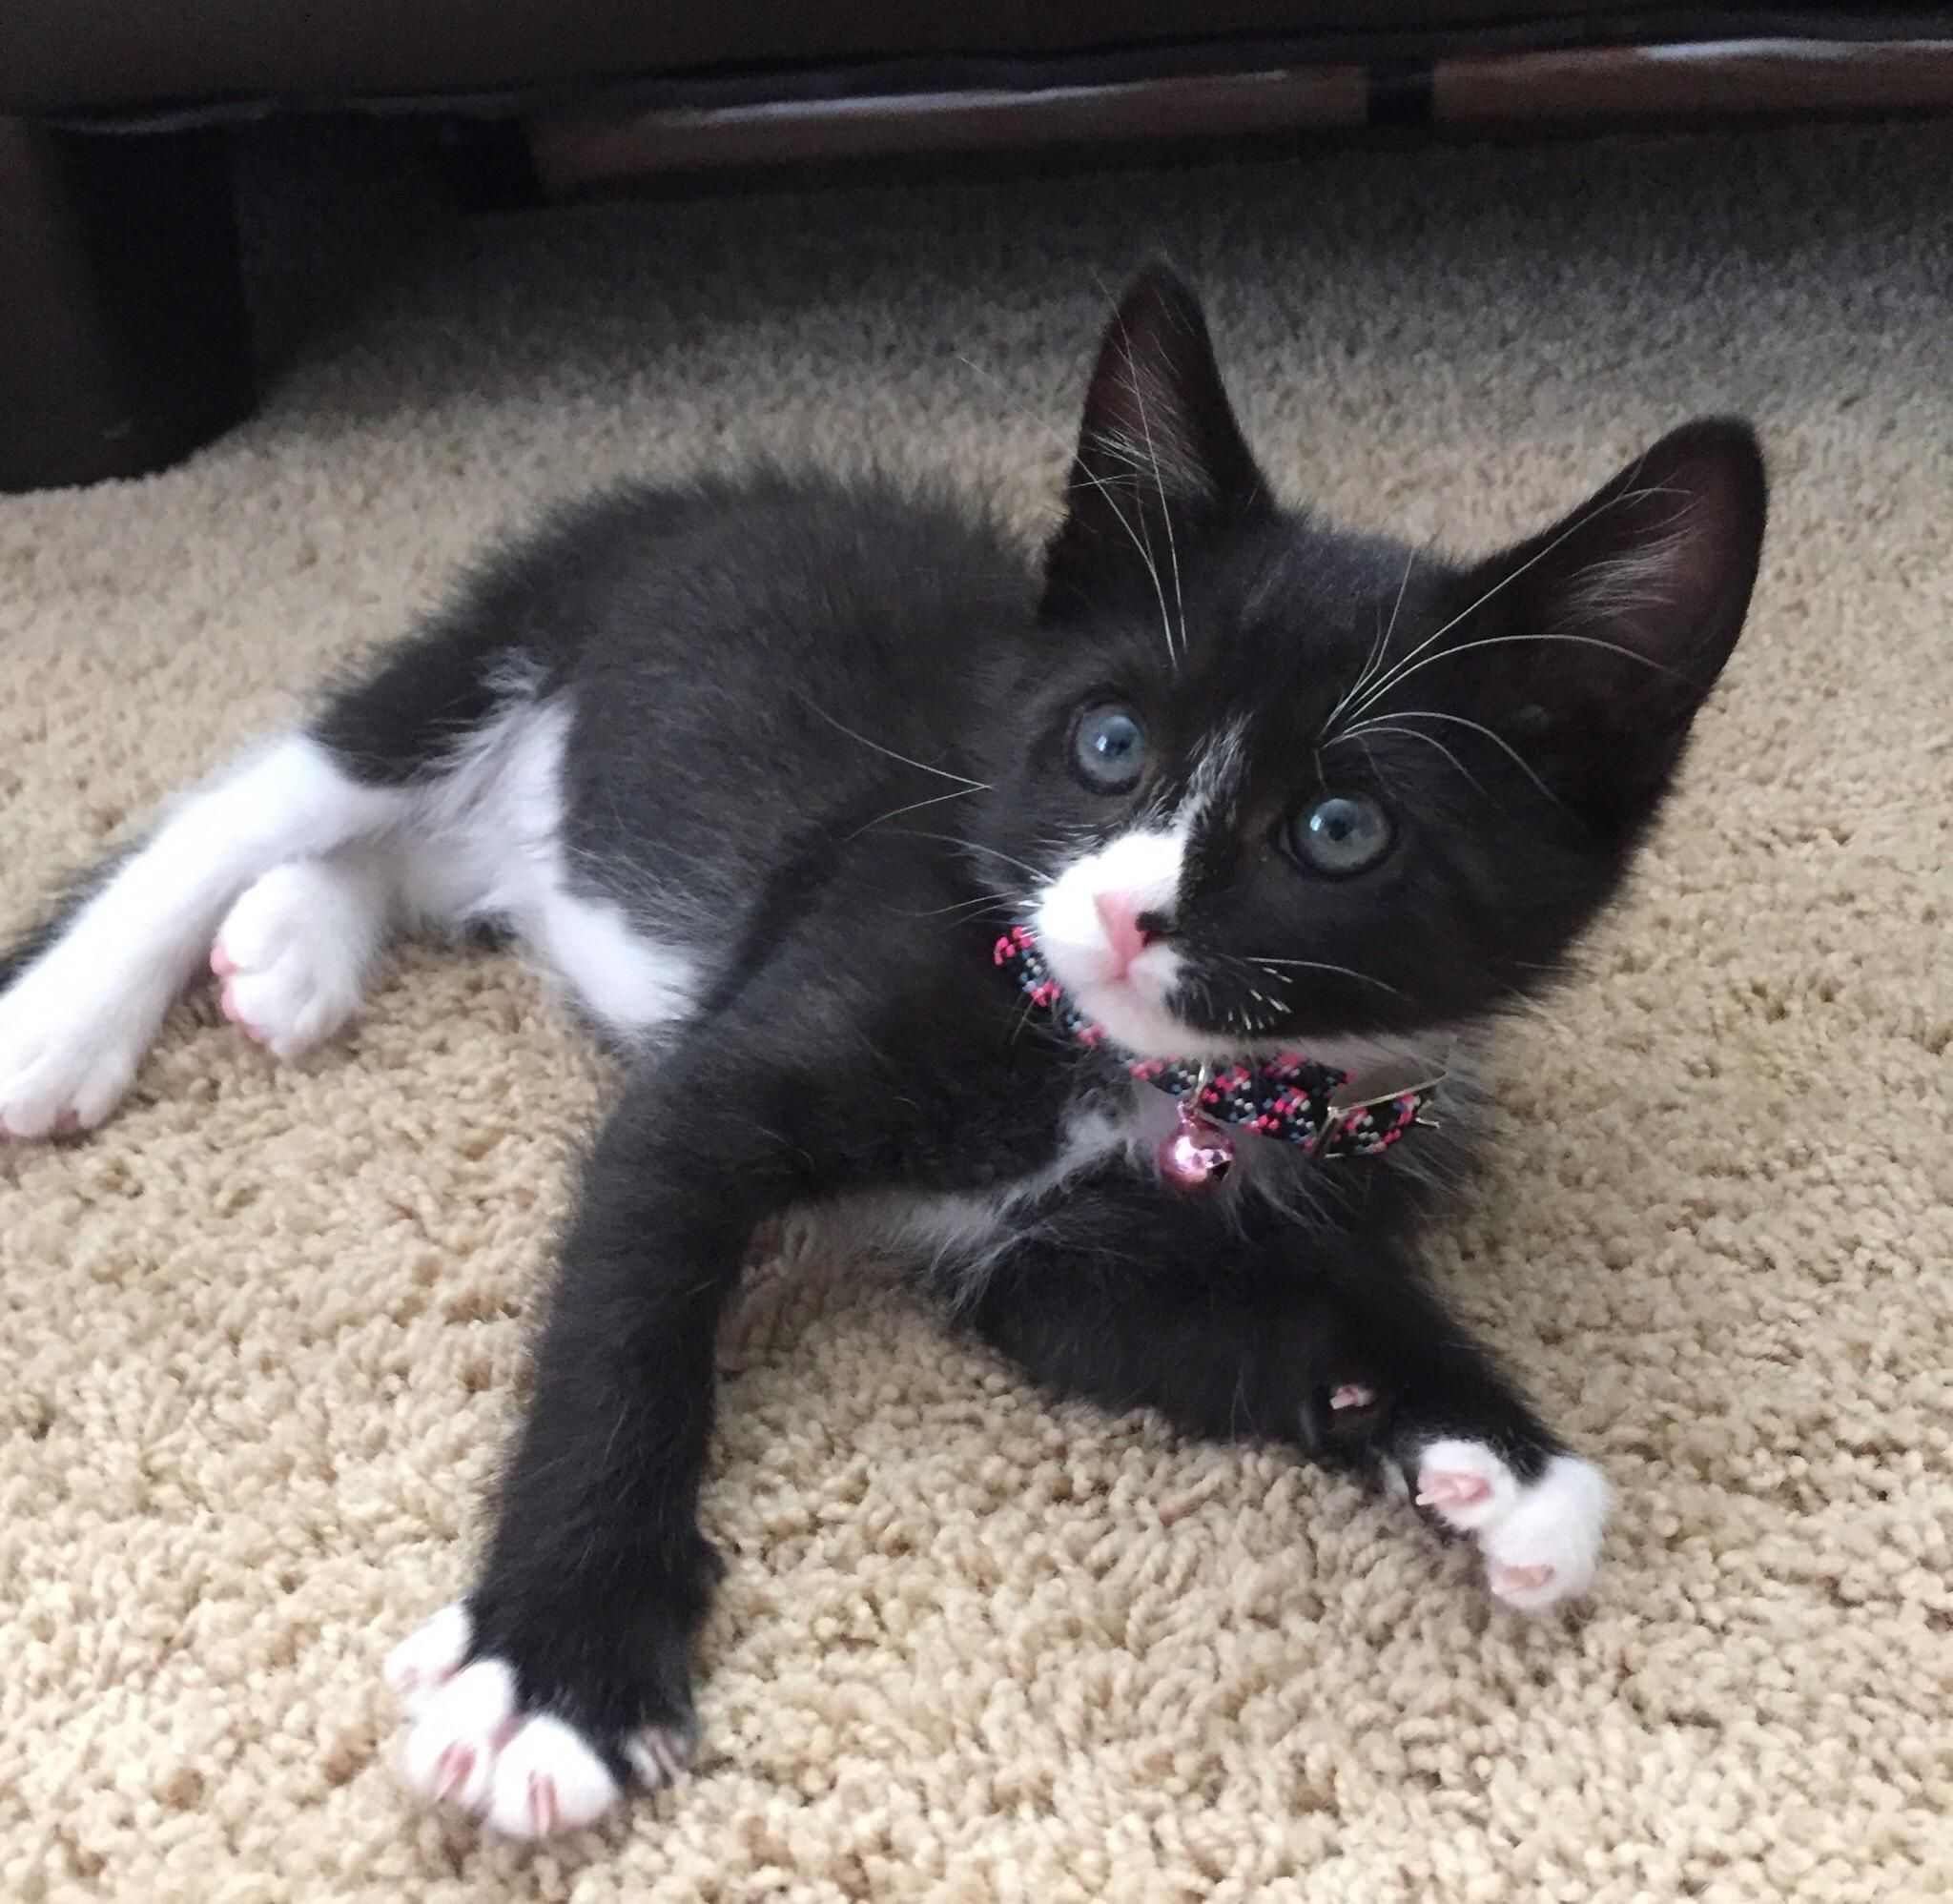 My New 9 Week Old Kitten Named Figaro Im Quite Allergic To Cats But Hes Just To My New 9 Week Old Kitten Named In 2020 Kitten Names Allergic To Cats Bambino Cat